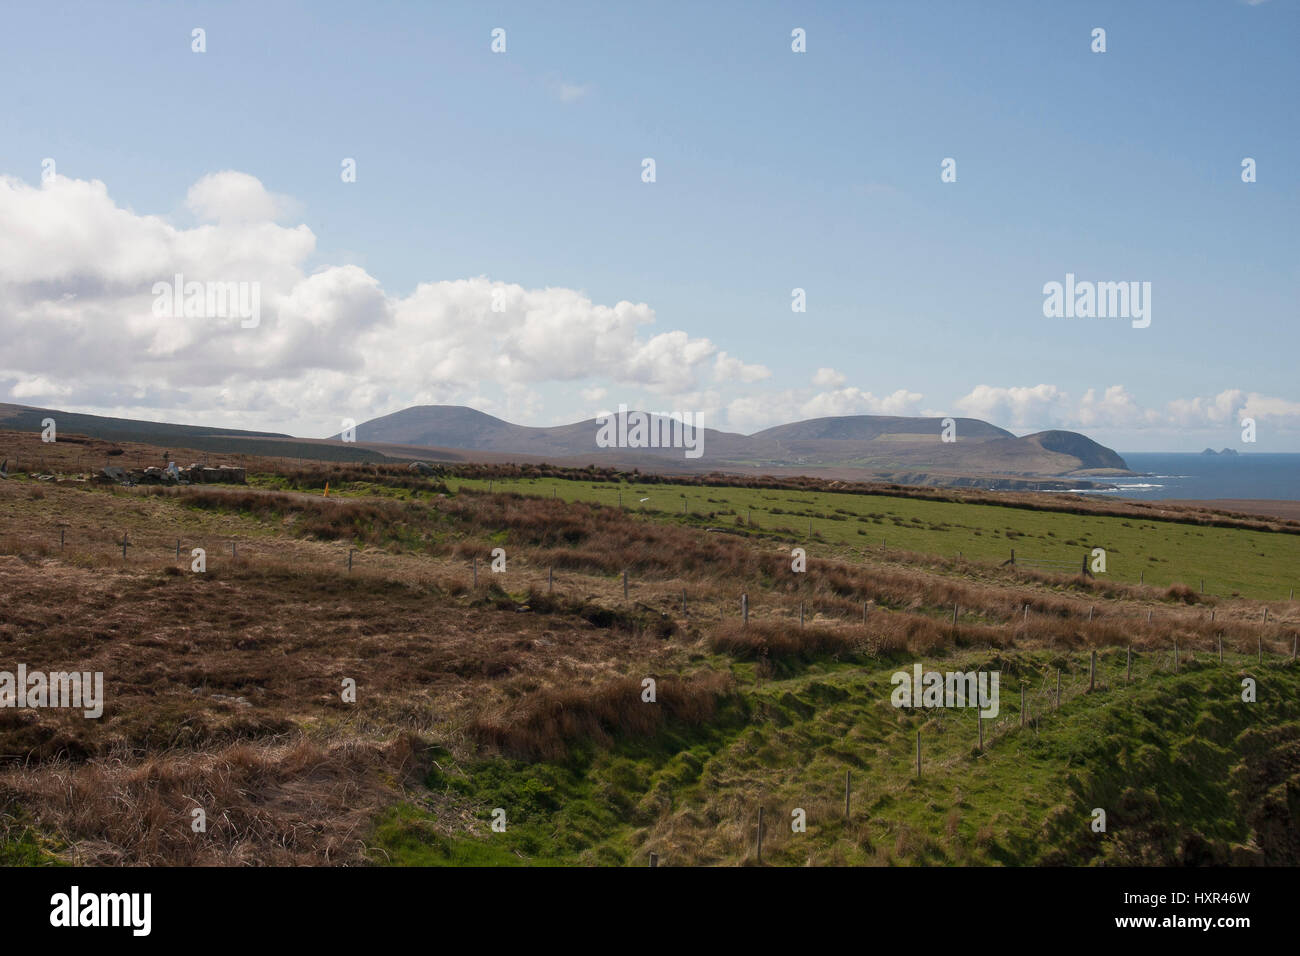 View from the Ceide Fields Visitor Centre across the landscape of County Mayo. - Stock Image